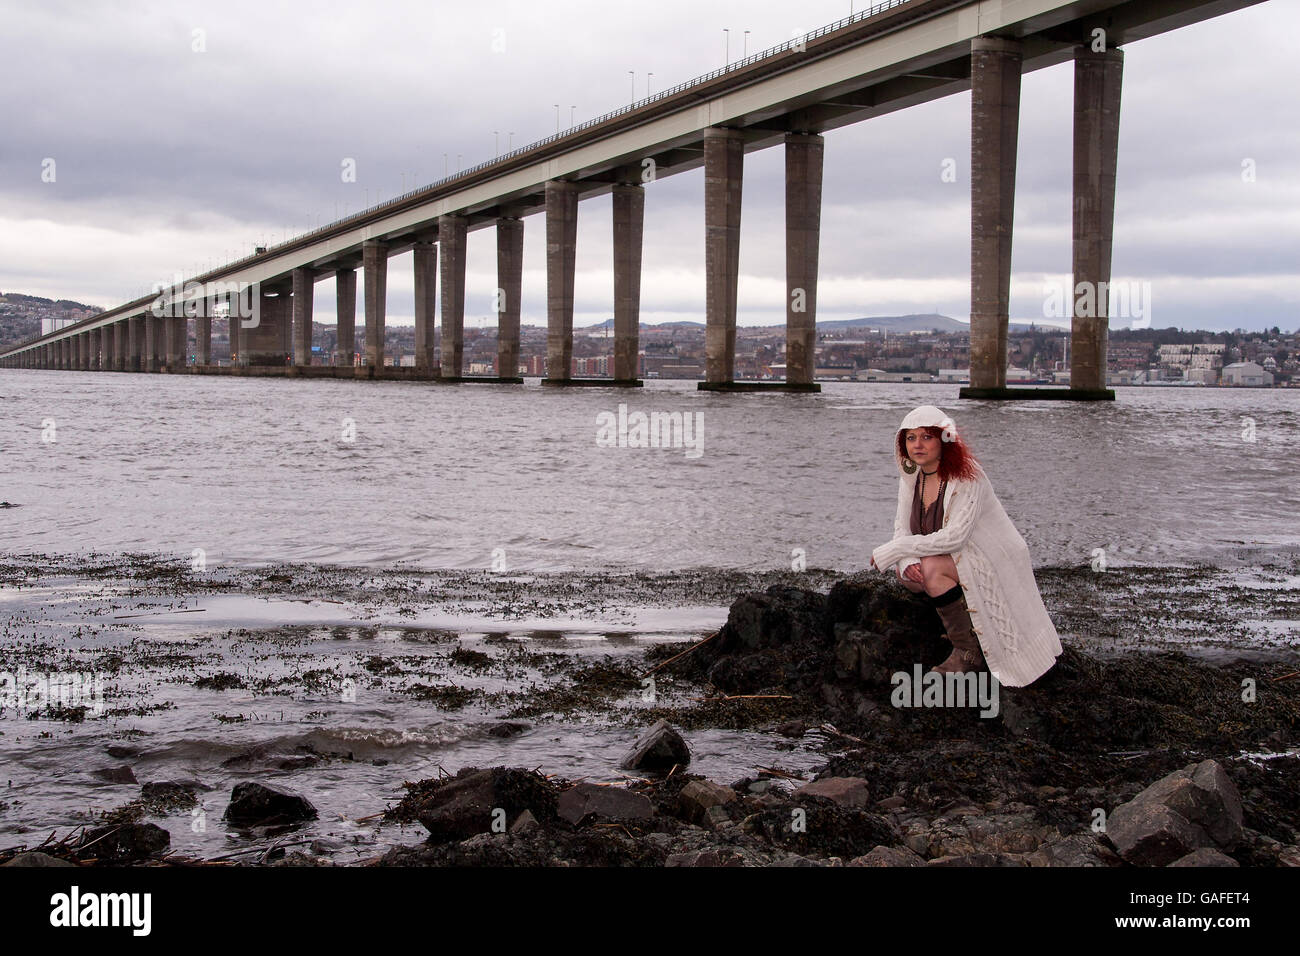 A woman crouched down along the Firth of Tay coastline on a very blustery day with her hair being blown by the wind Stock Photo